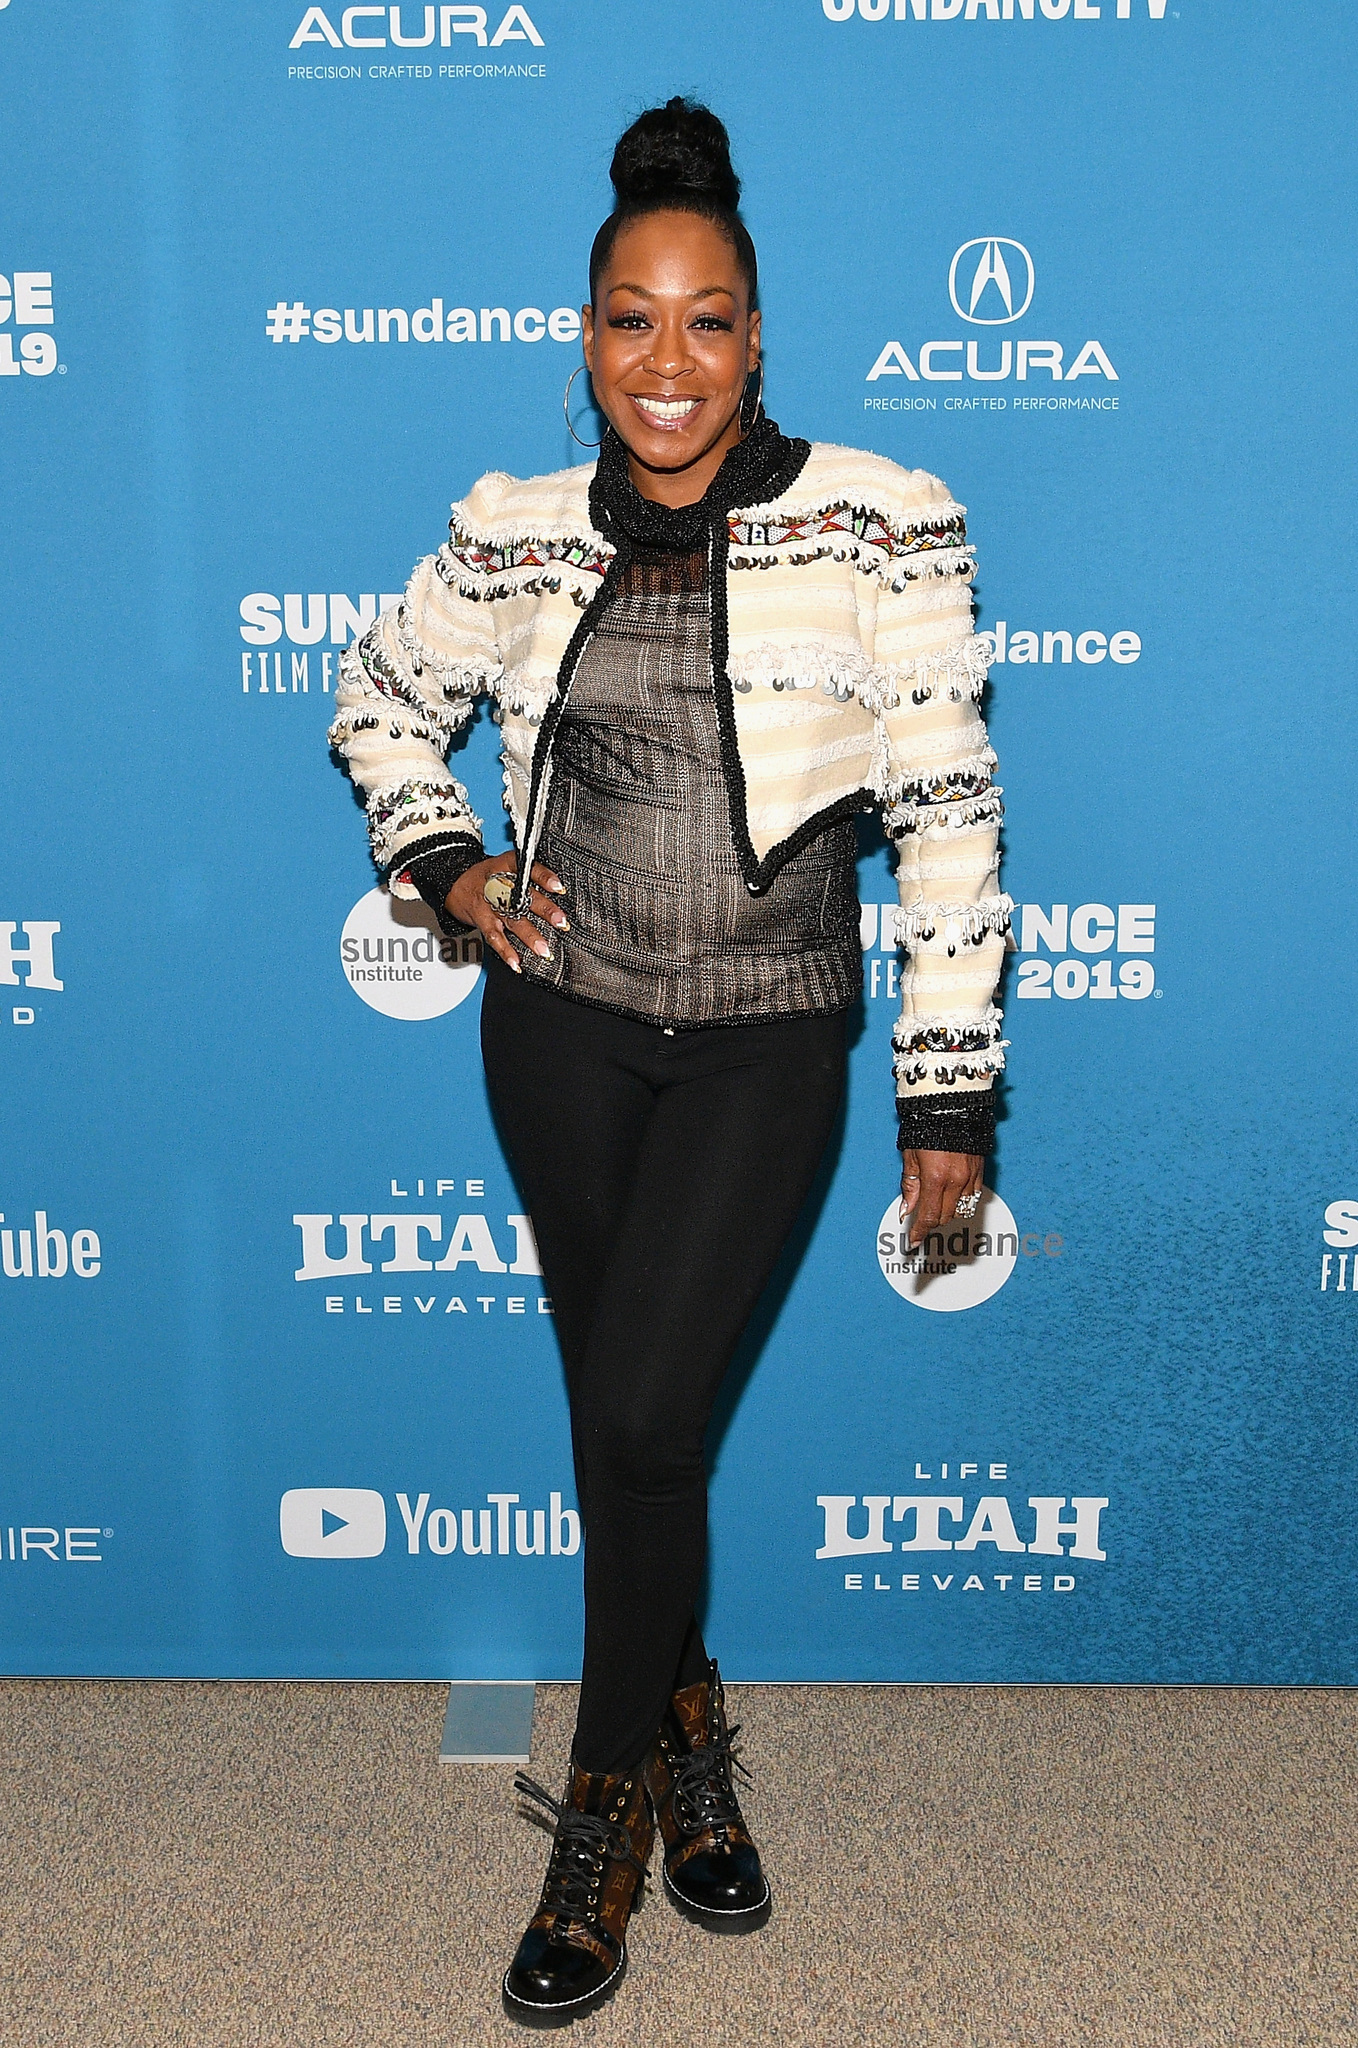 Tichina Arnold at an event for The Last Black Man in San Francisco (2019)